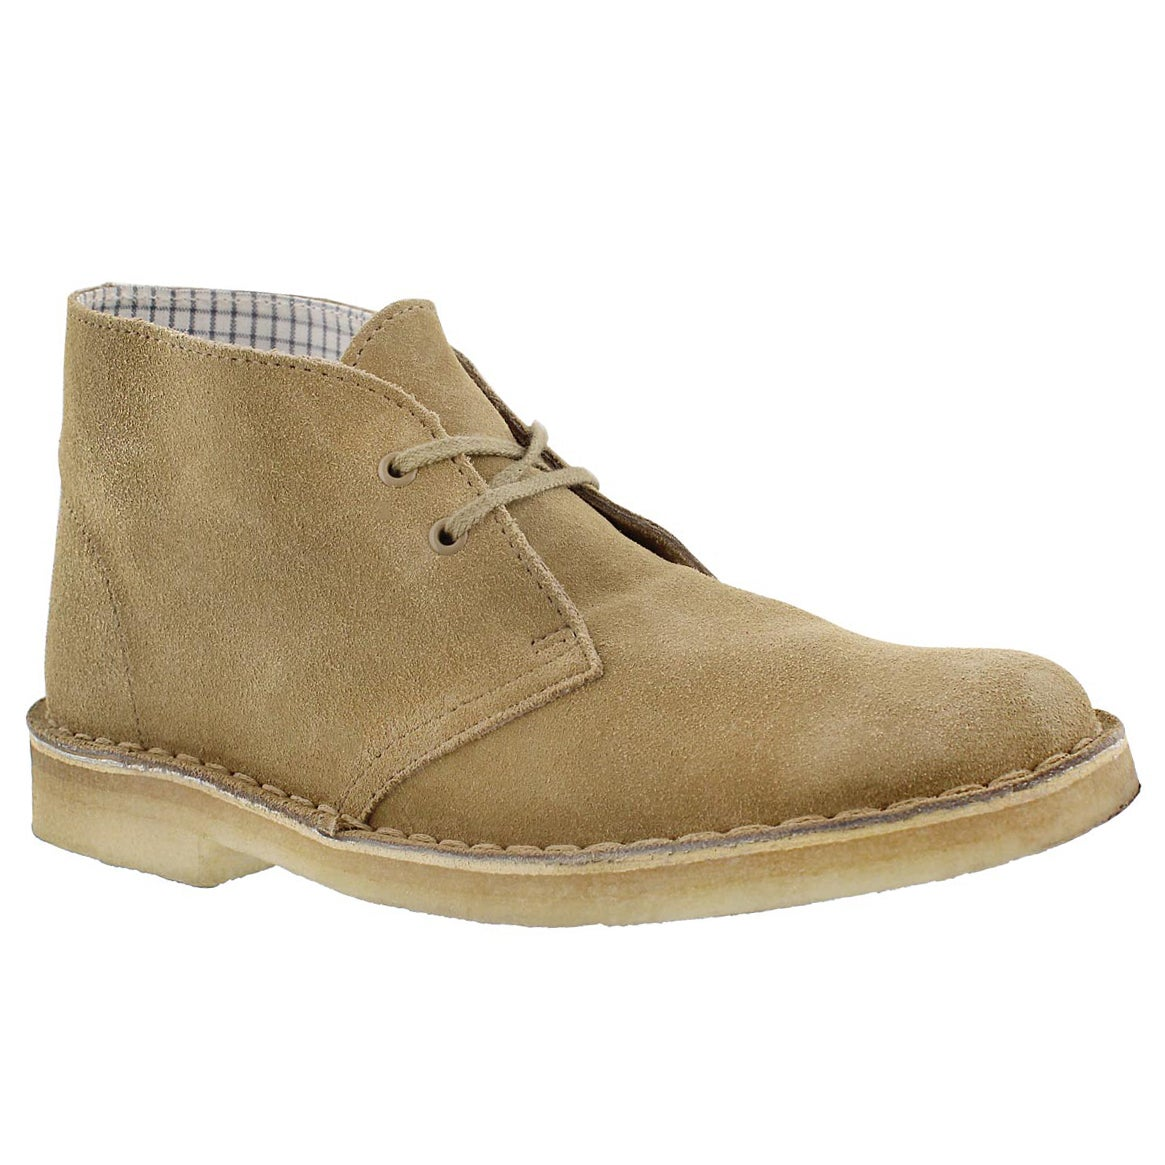 Wonderful Clarks Women39s Desert Snug W Desert Boot Shearling LinedTaupe